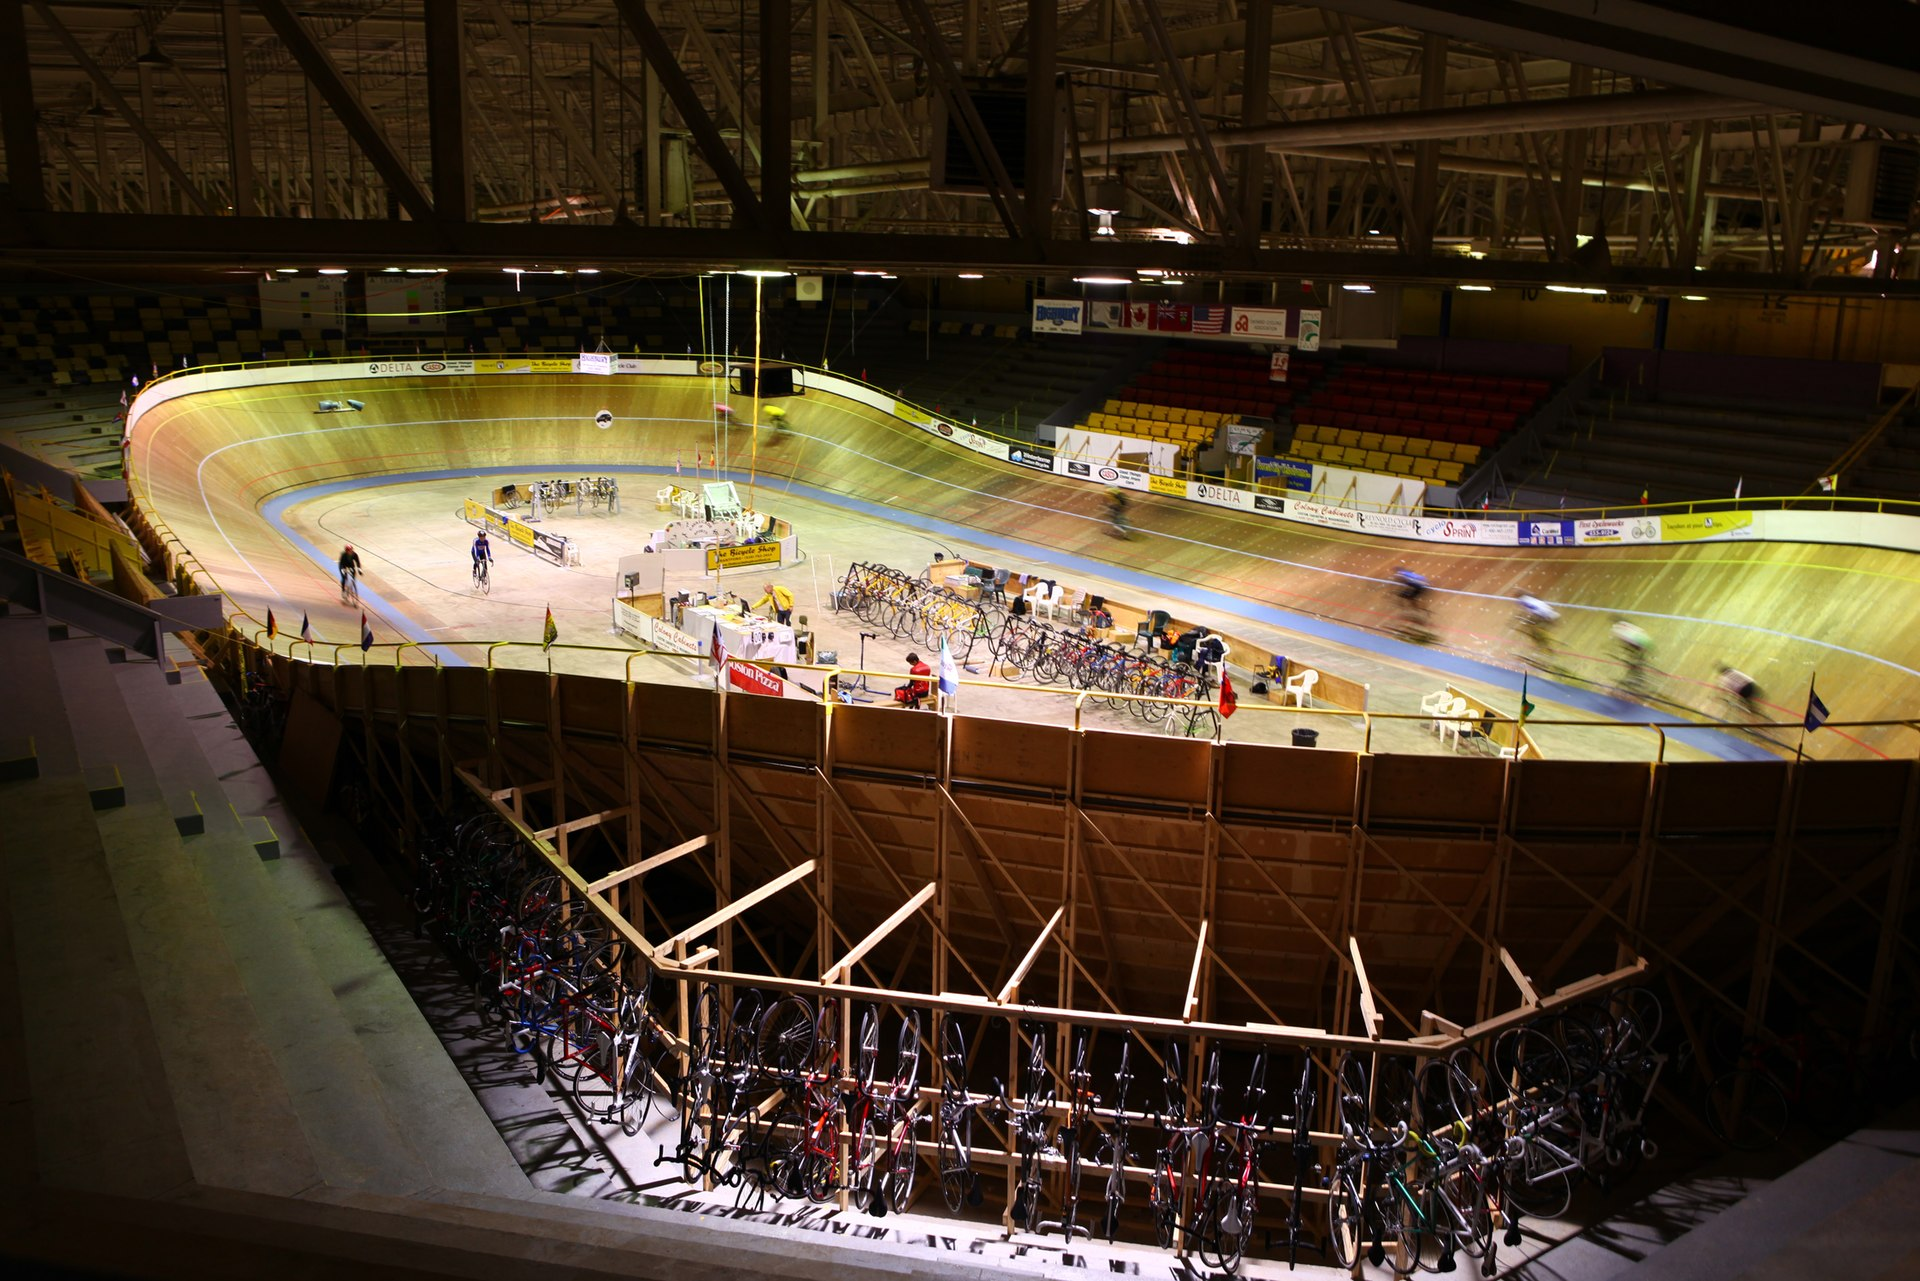 Forest city velodrome wikipedia for Indoor gardening wikipedia